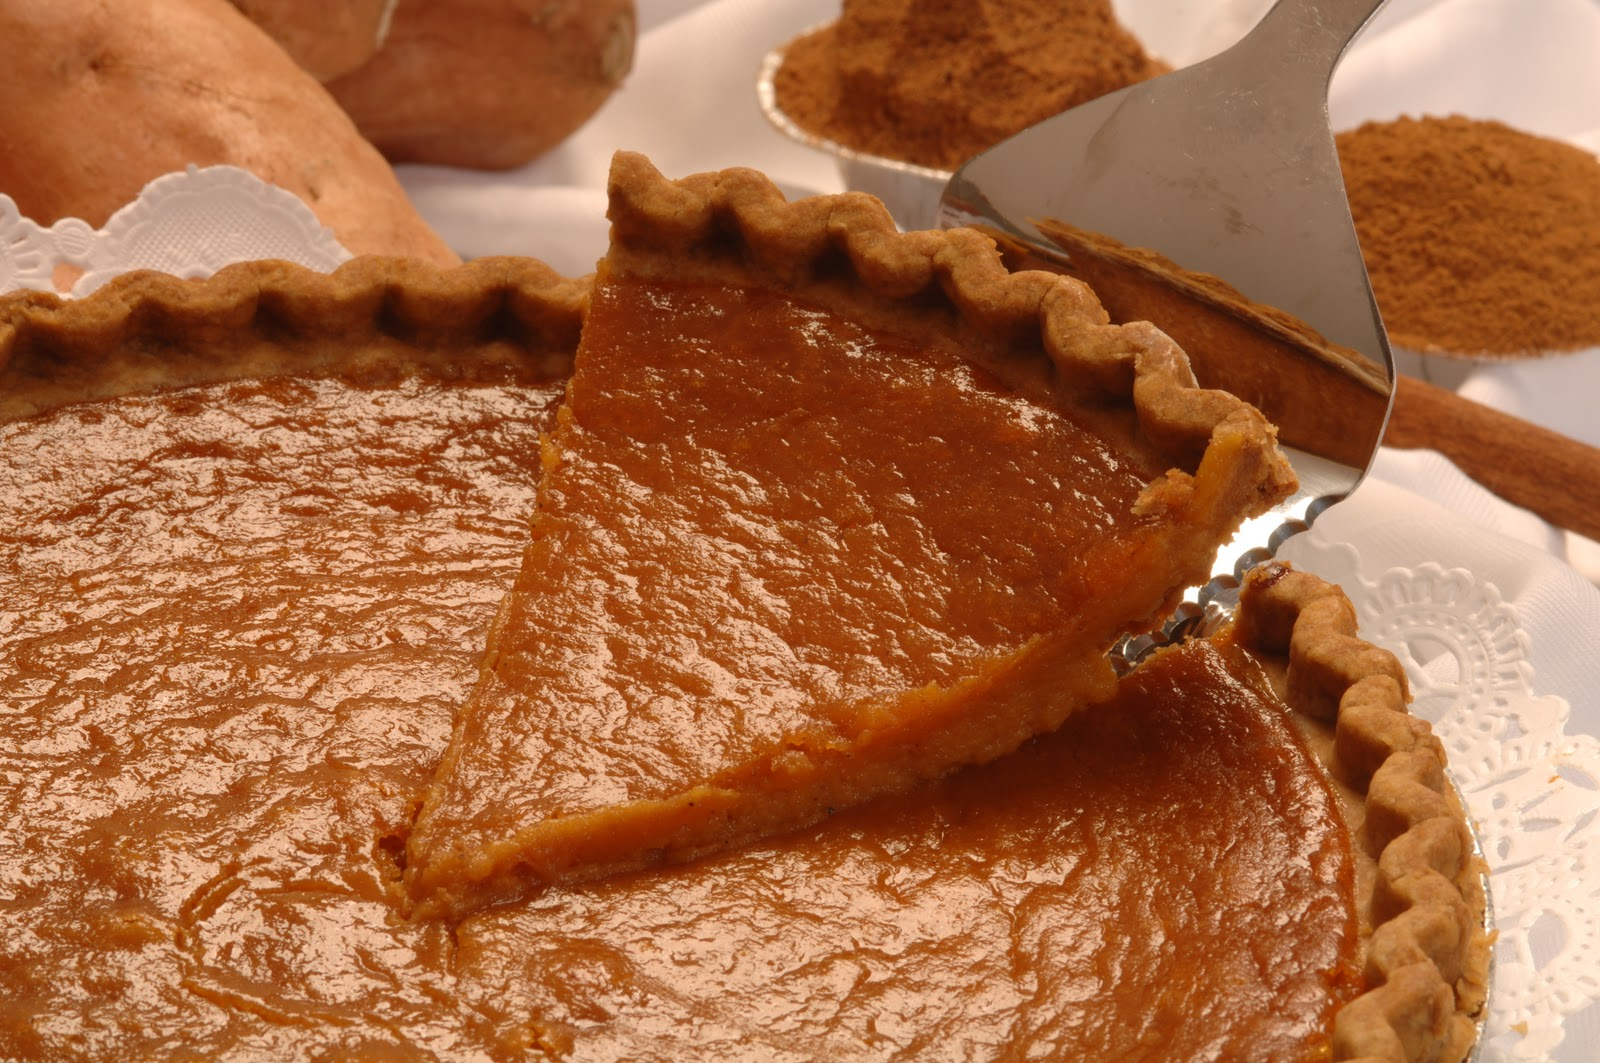 The Thrillbilly Gourmet: Sweet Potato Pie - Southern Classic